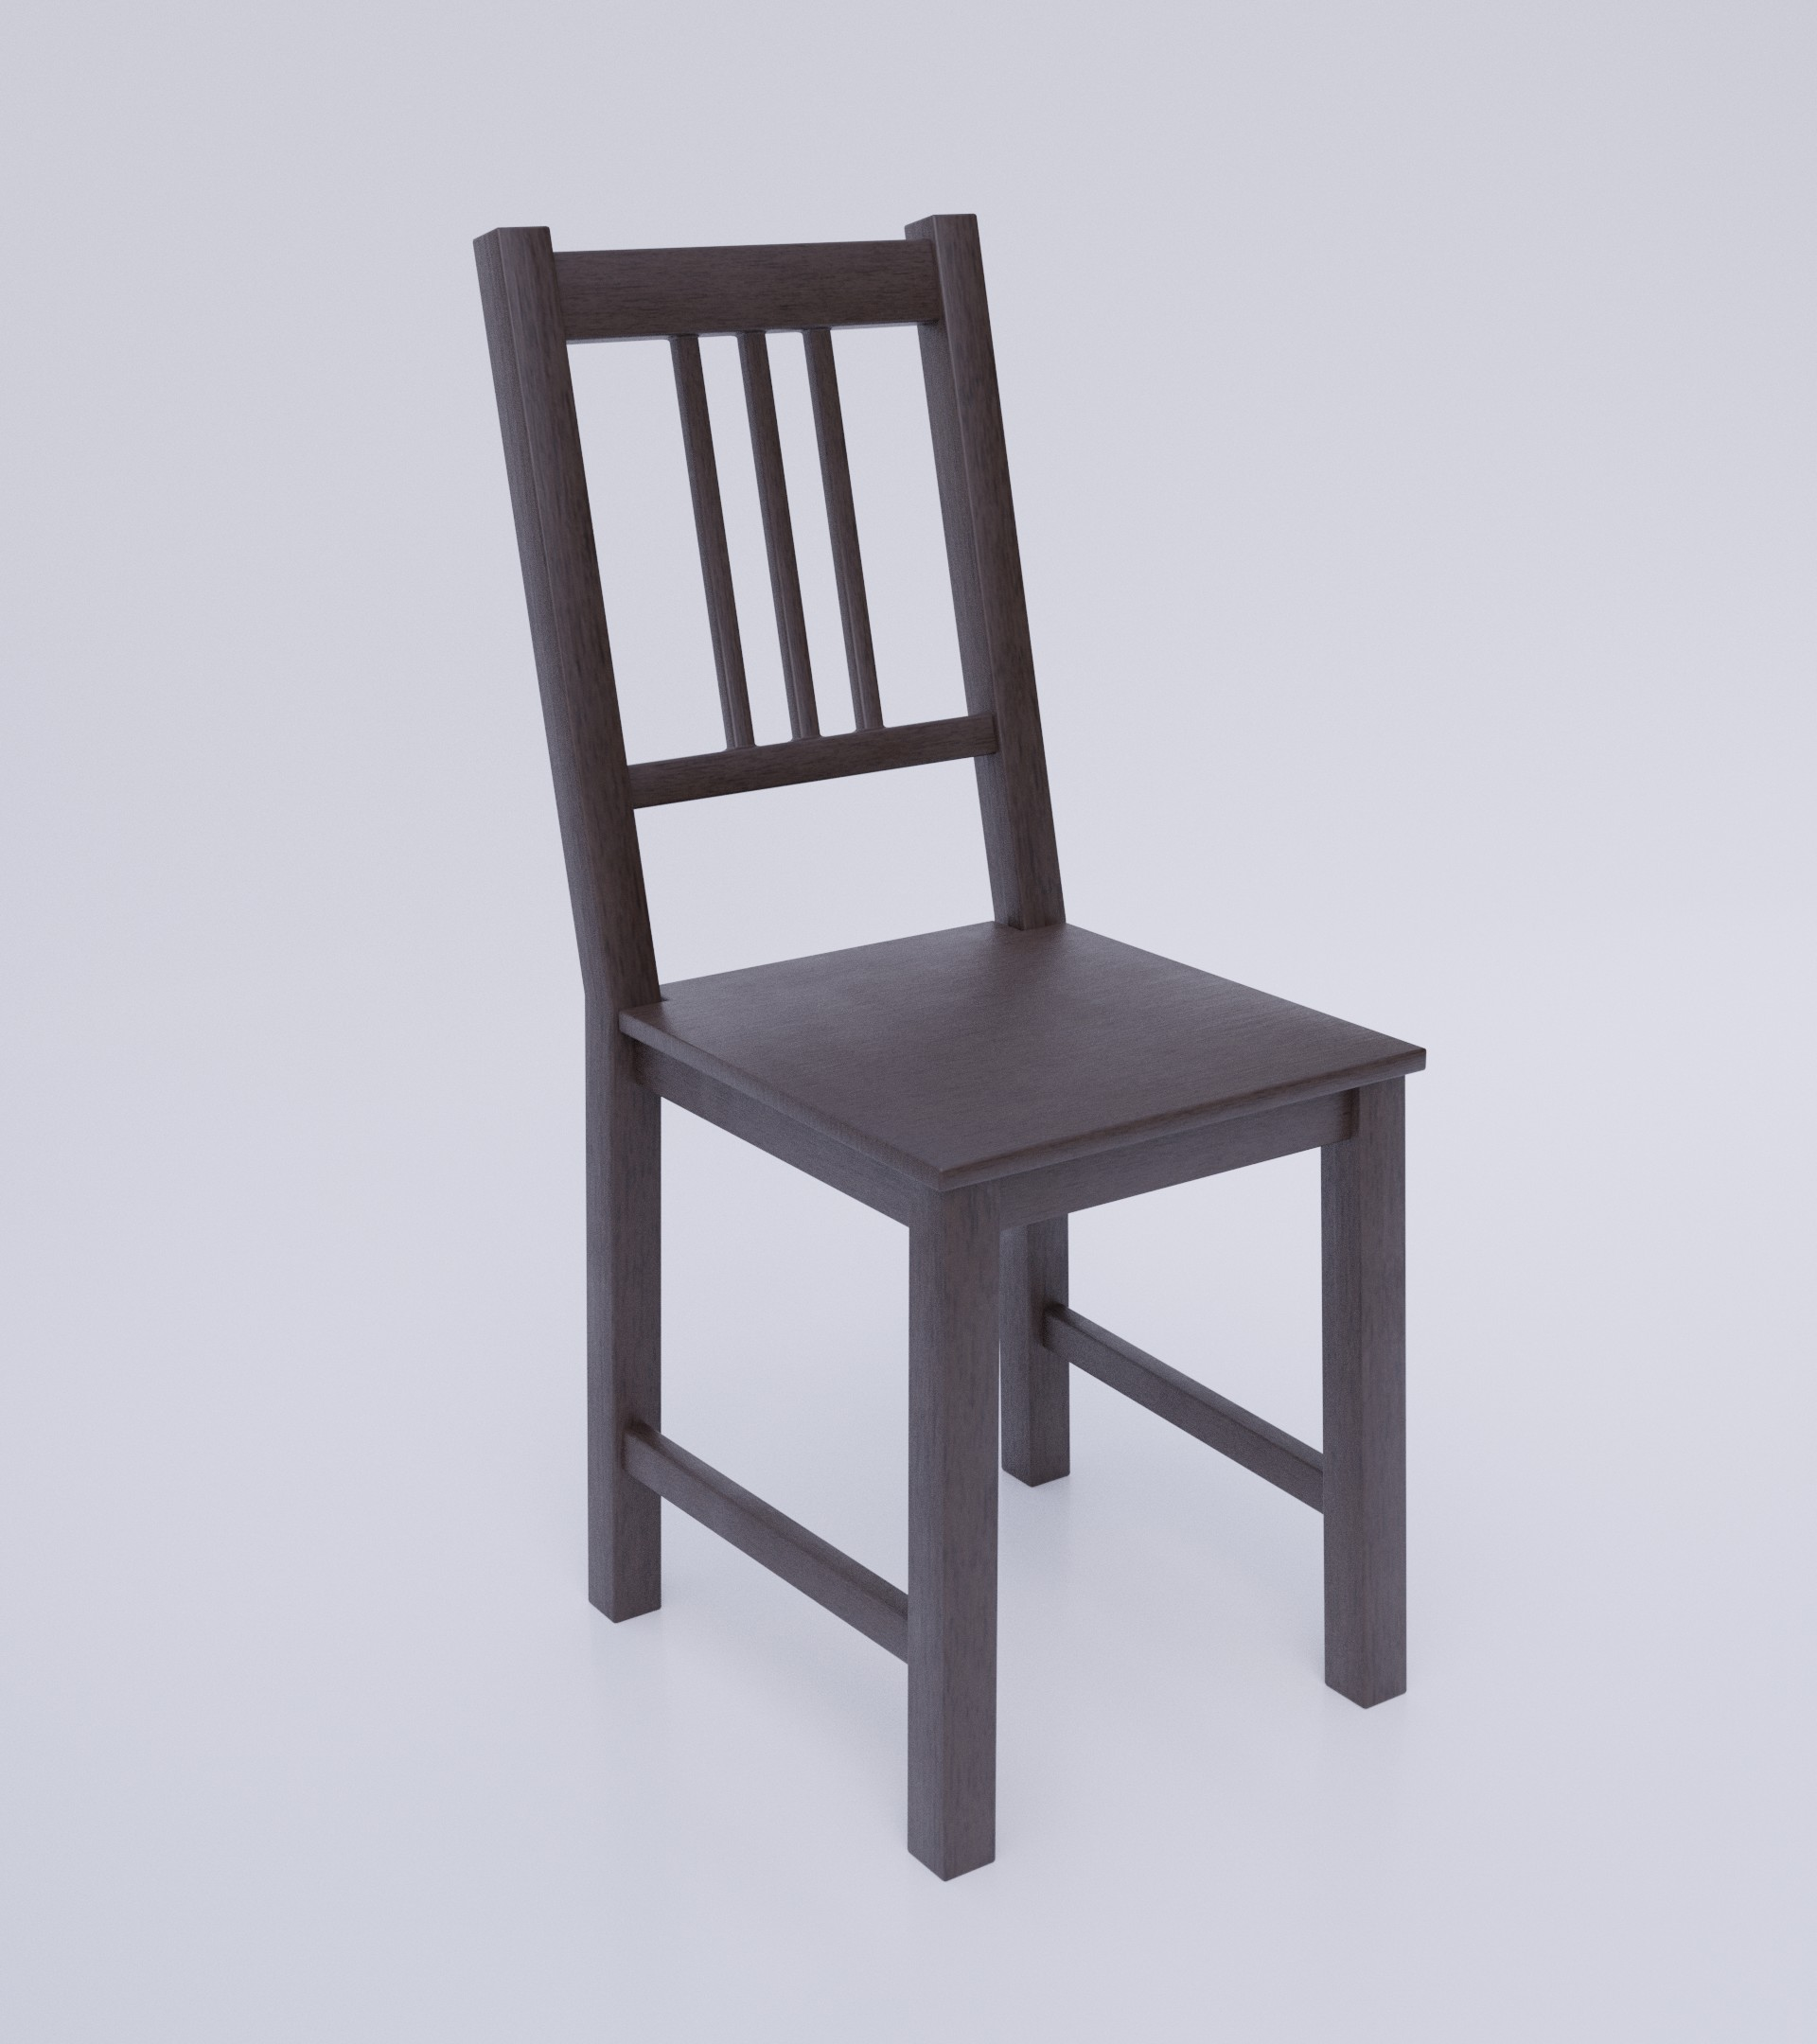 Simple Dark Wood Chair preview image 4